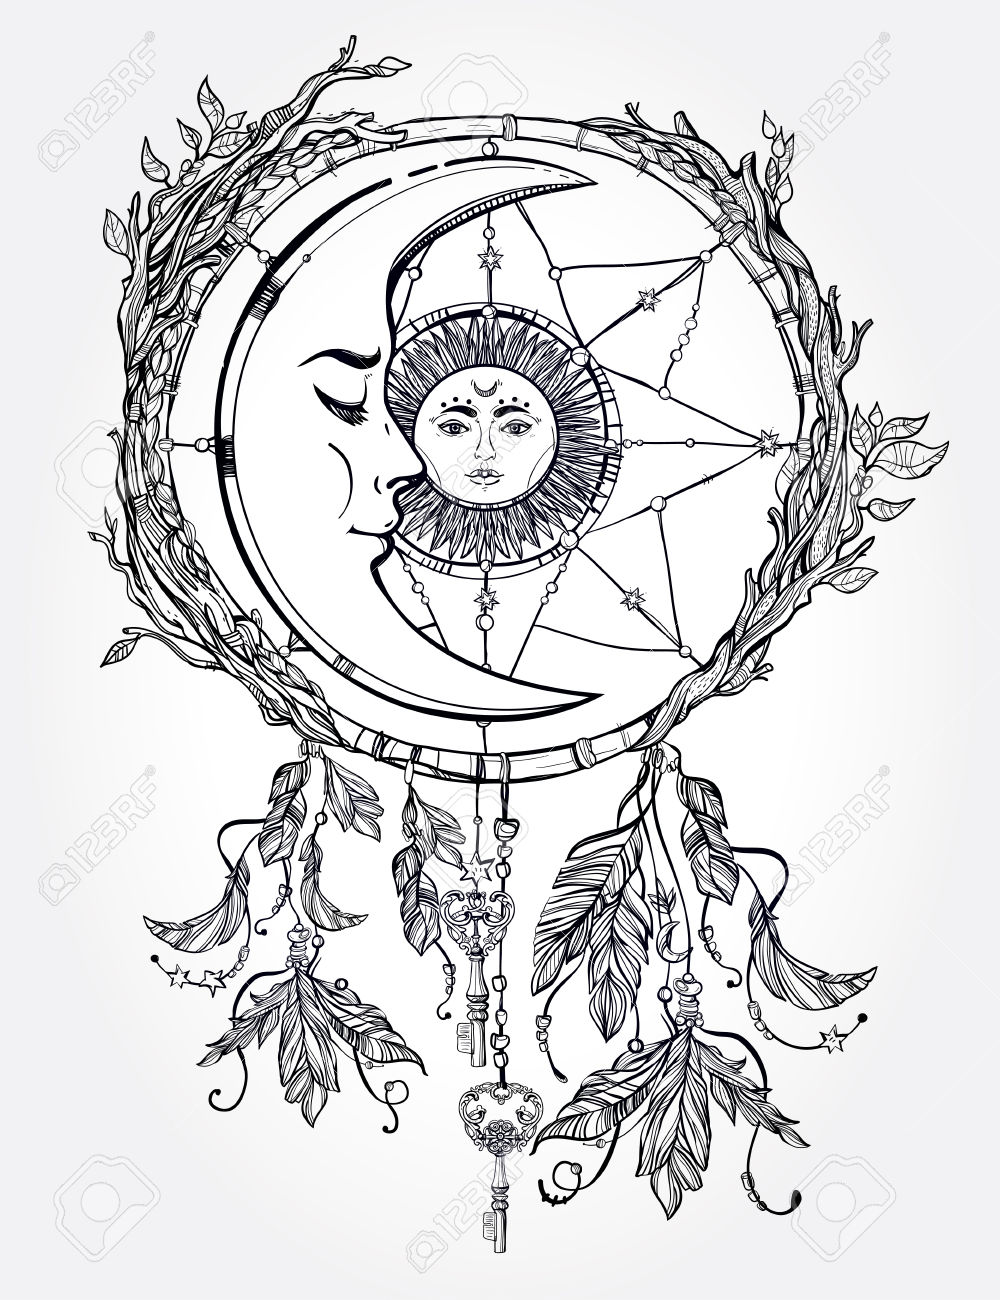 1000x1300 Drawn Dreamcatcher Moon